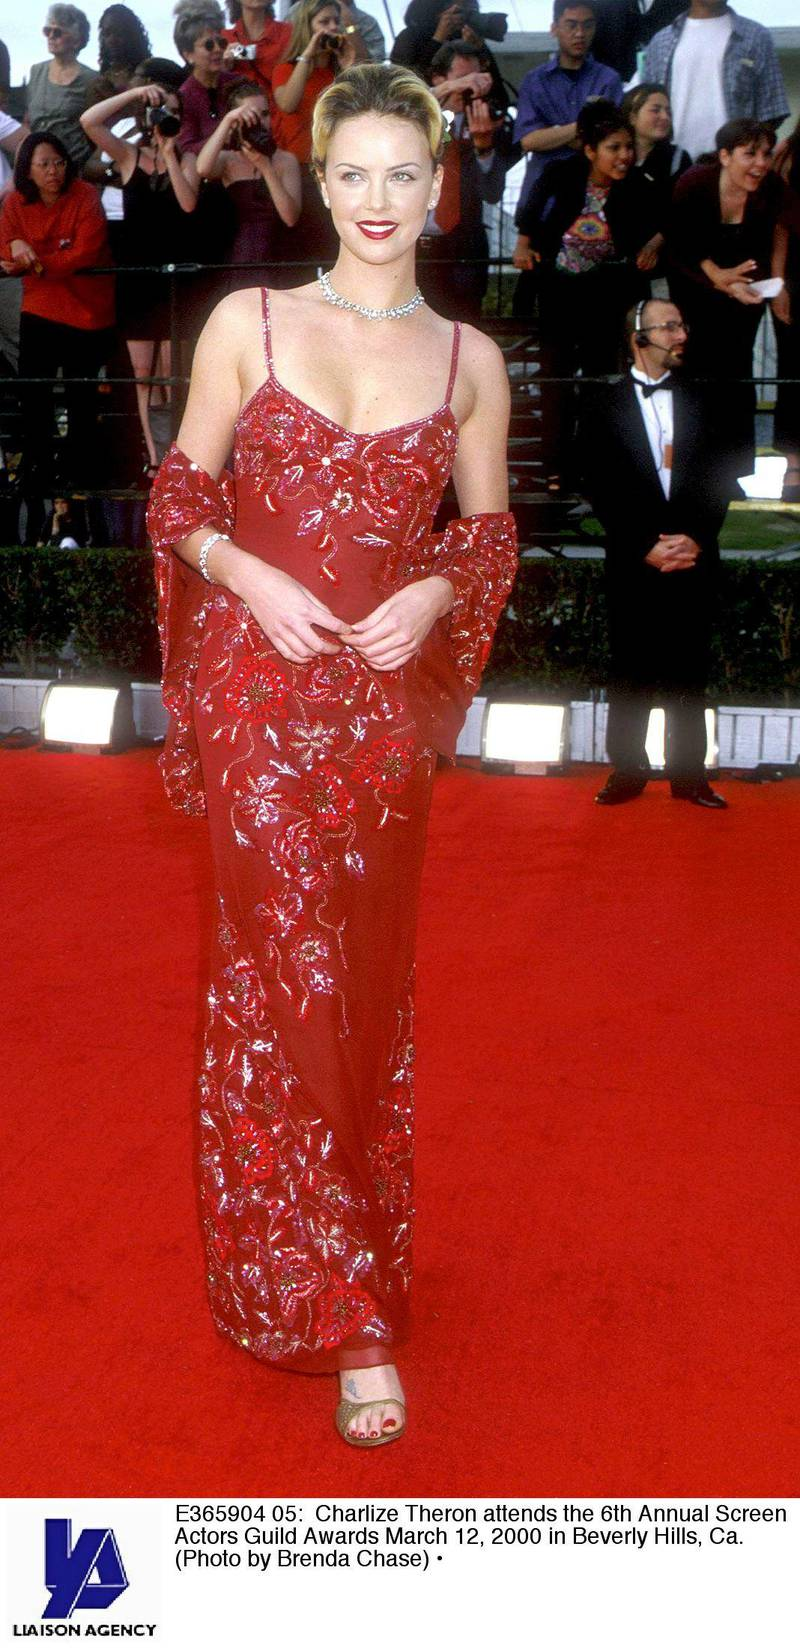 E365904 05: Charlize Theron attends the 6th Annual Screen Actors Guild Awards March 12, 2000 in Beverly Hills, Ca. (Photo by Brenda Chase)